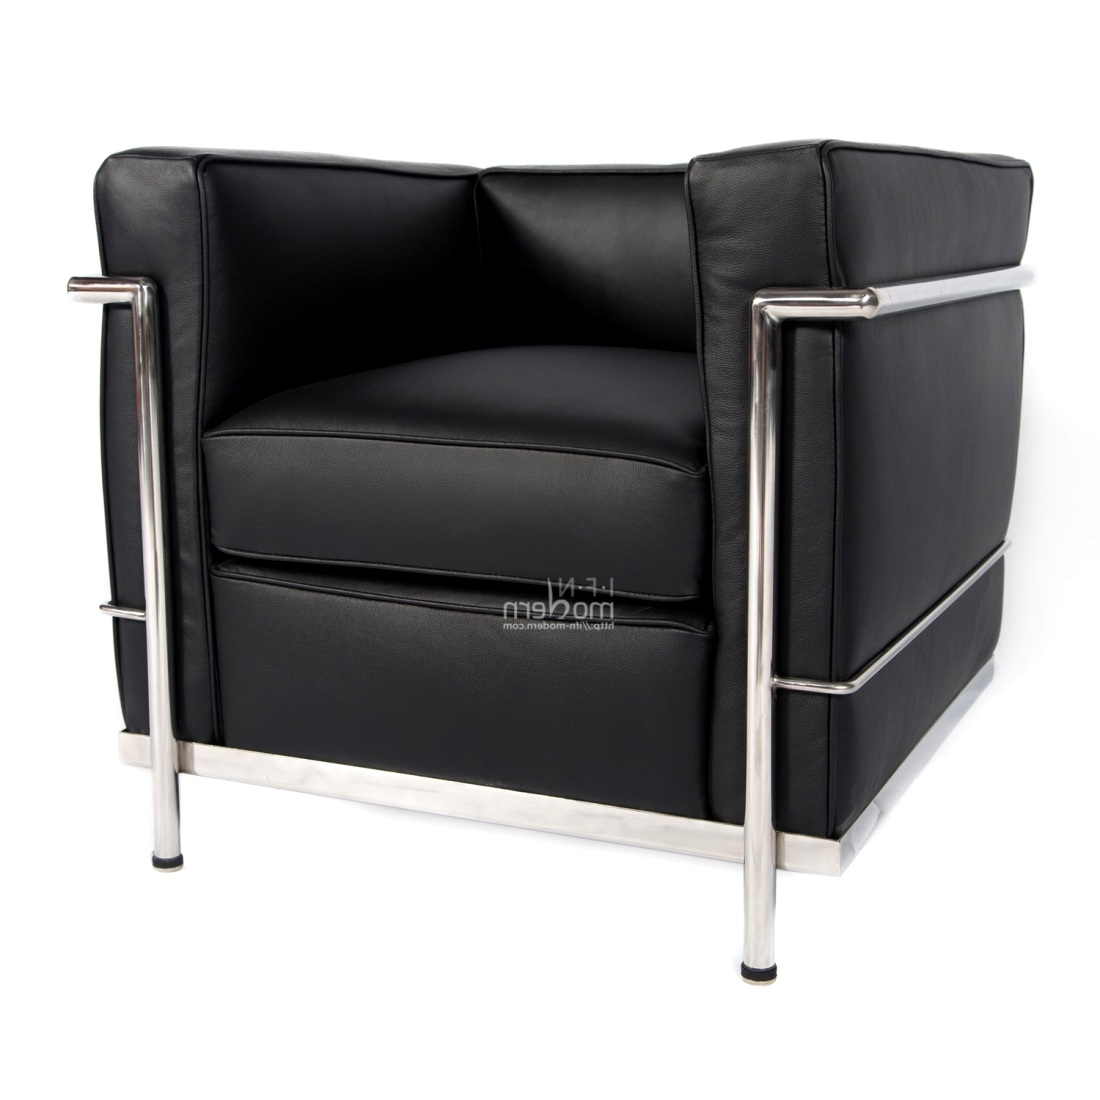 le corbusier lc2 style chair. Black Bedroom Furniture Sets. Home Design Ideas